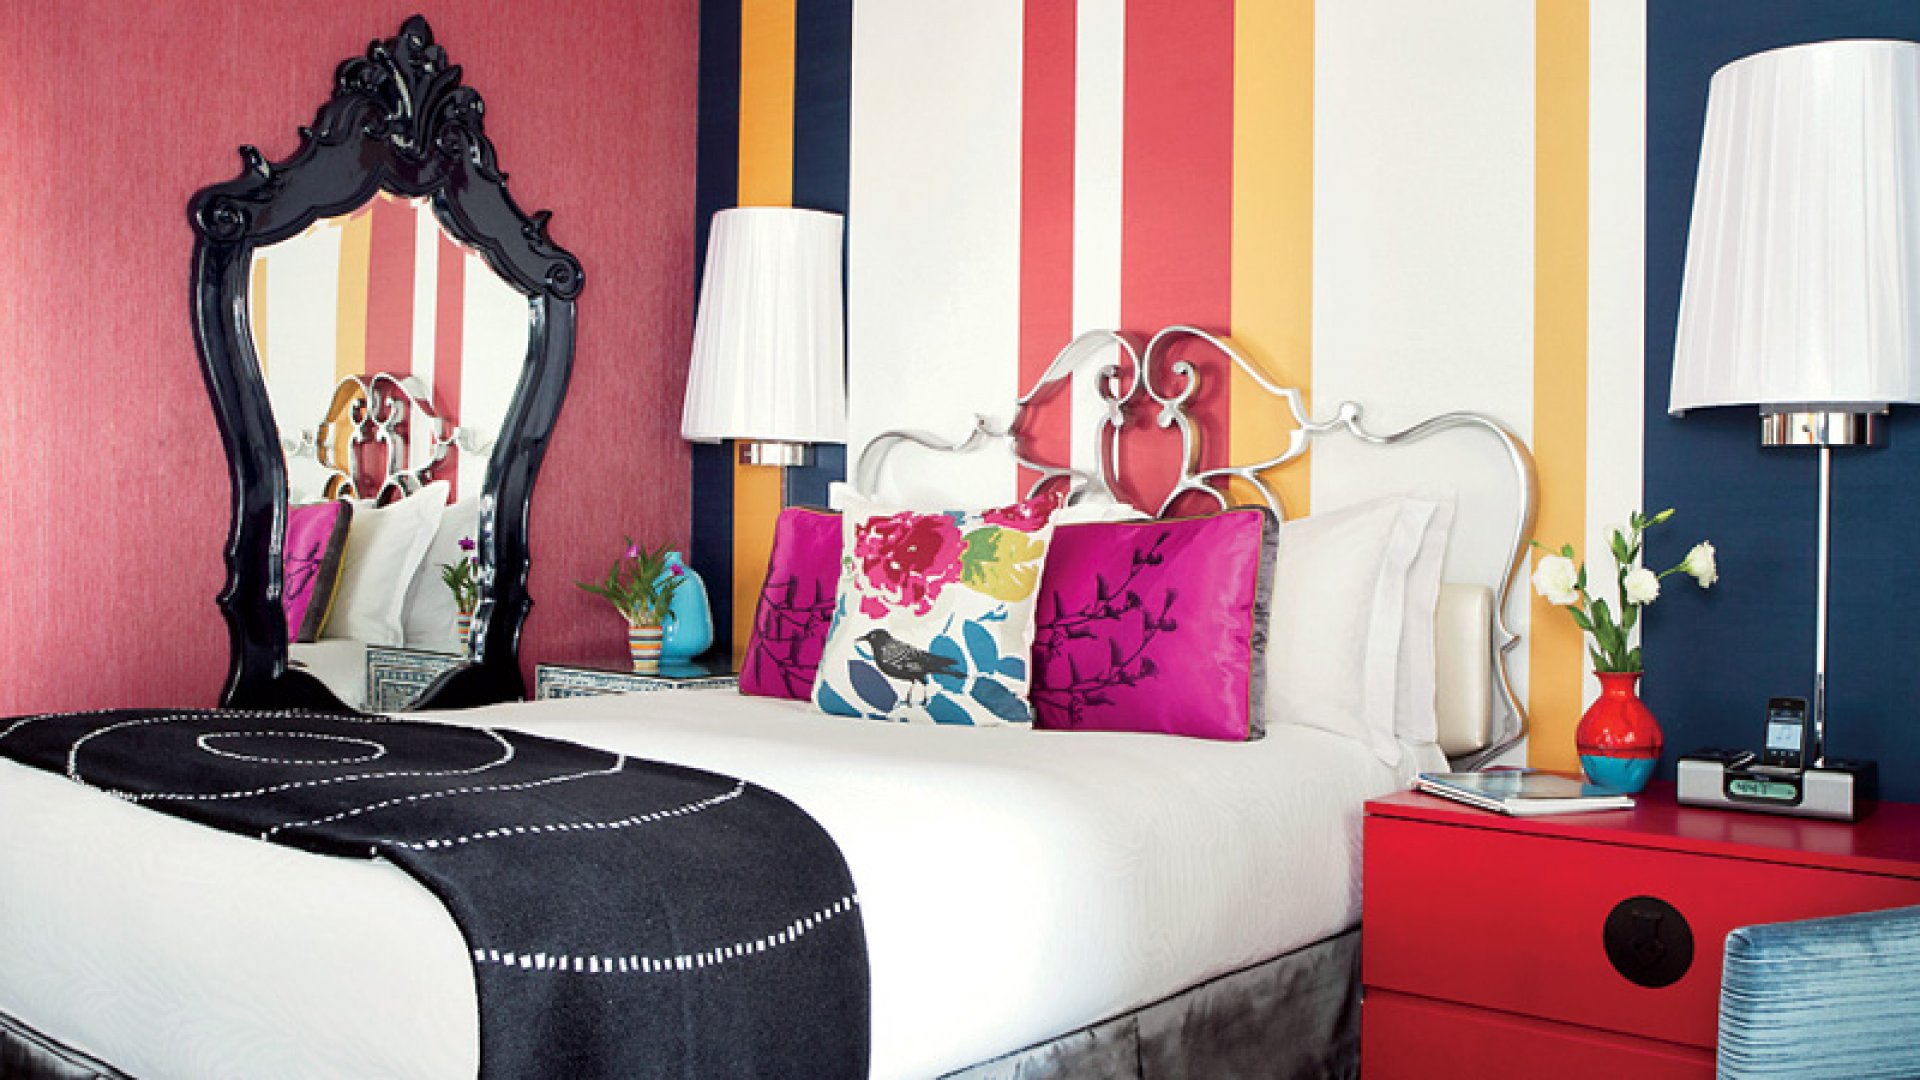 How Kimpton Hotels Scaled Its Culture